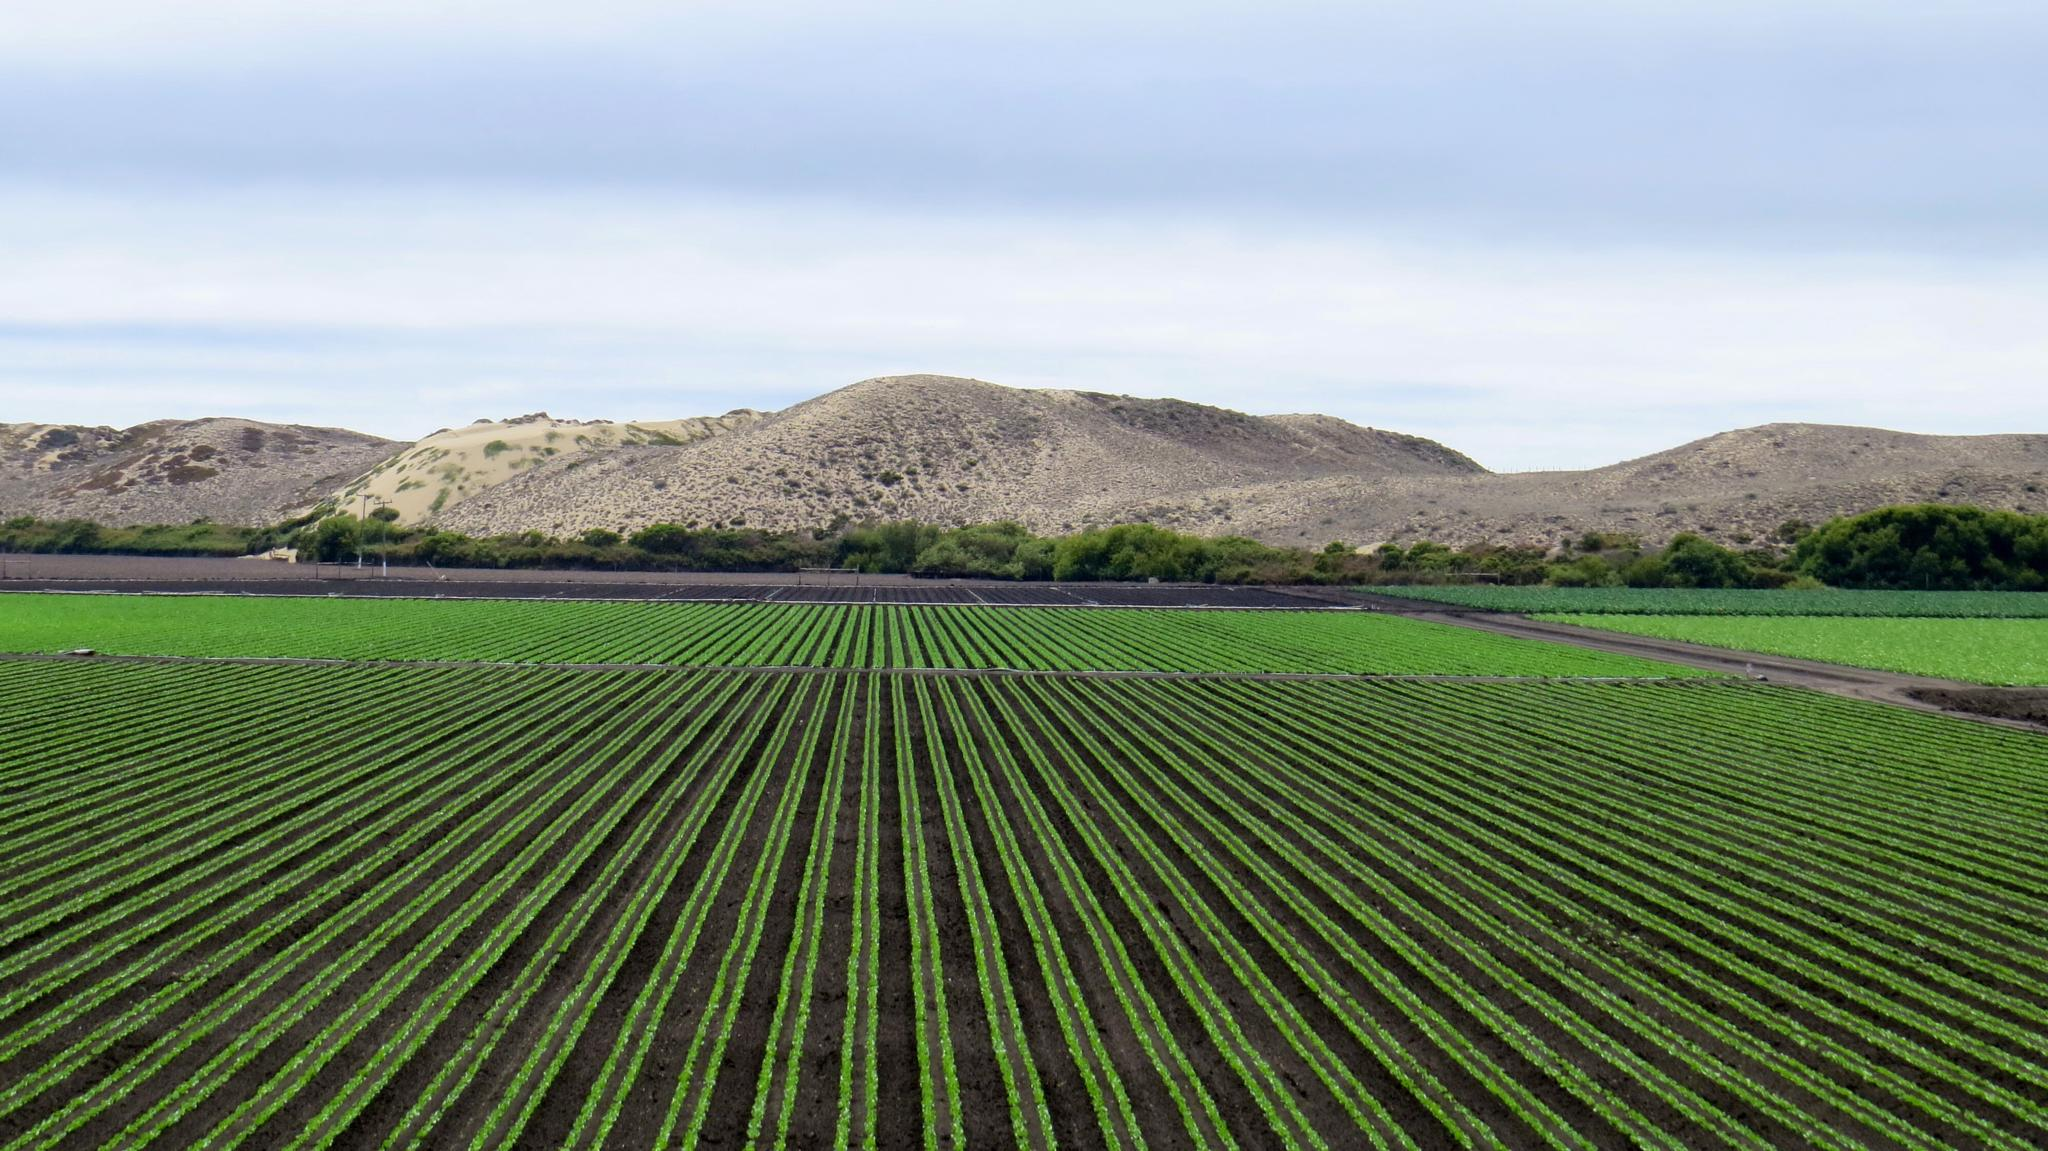 Fields by the Sea - Marina CA by soulofcentralcoast